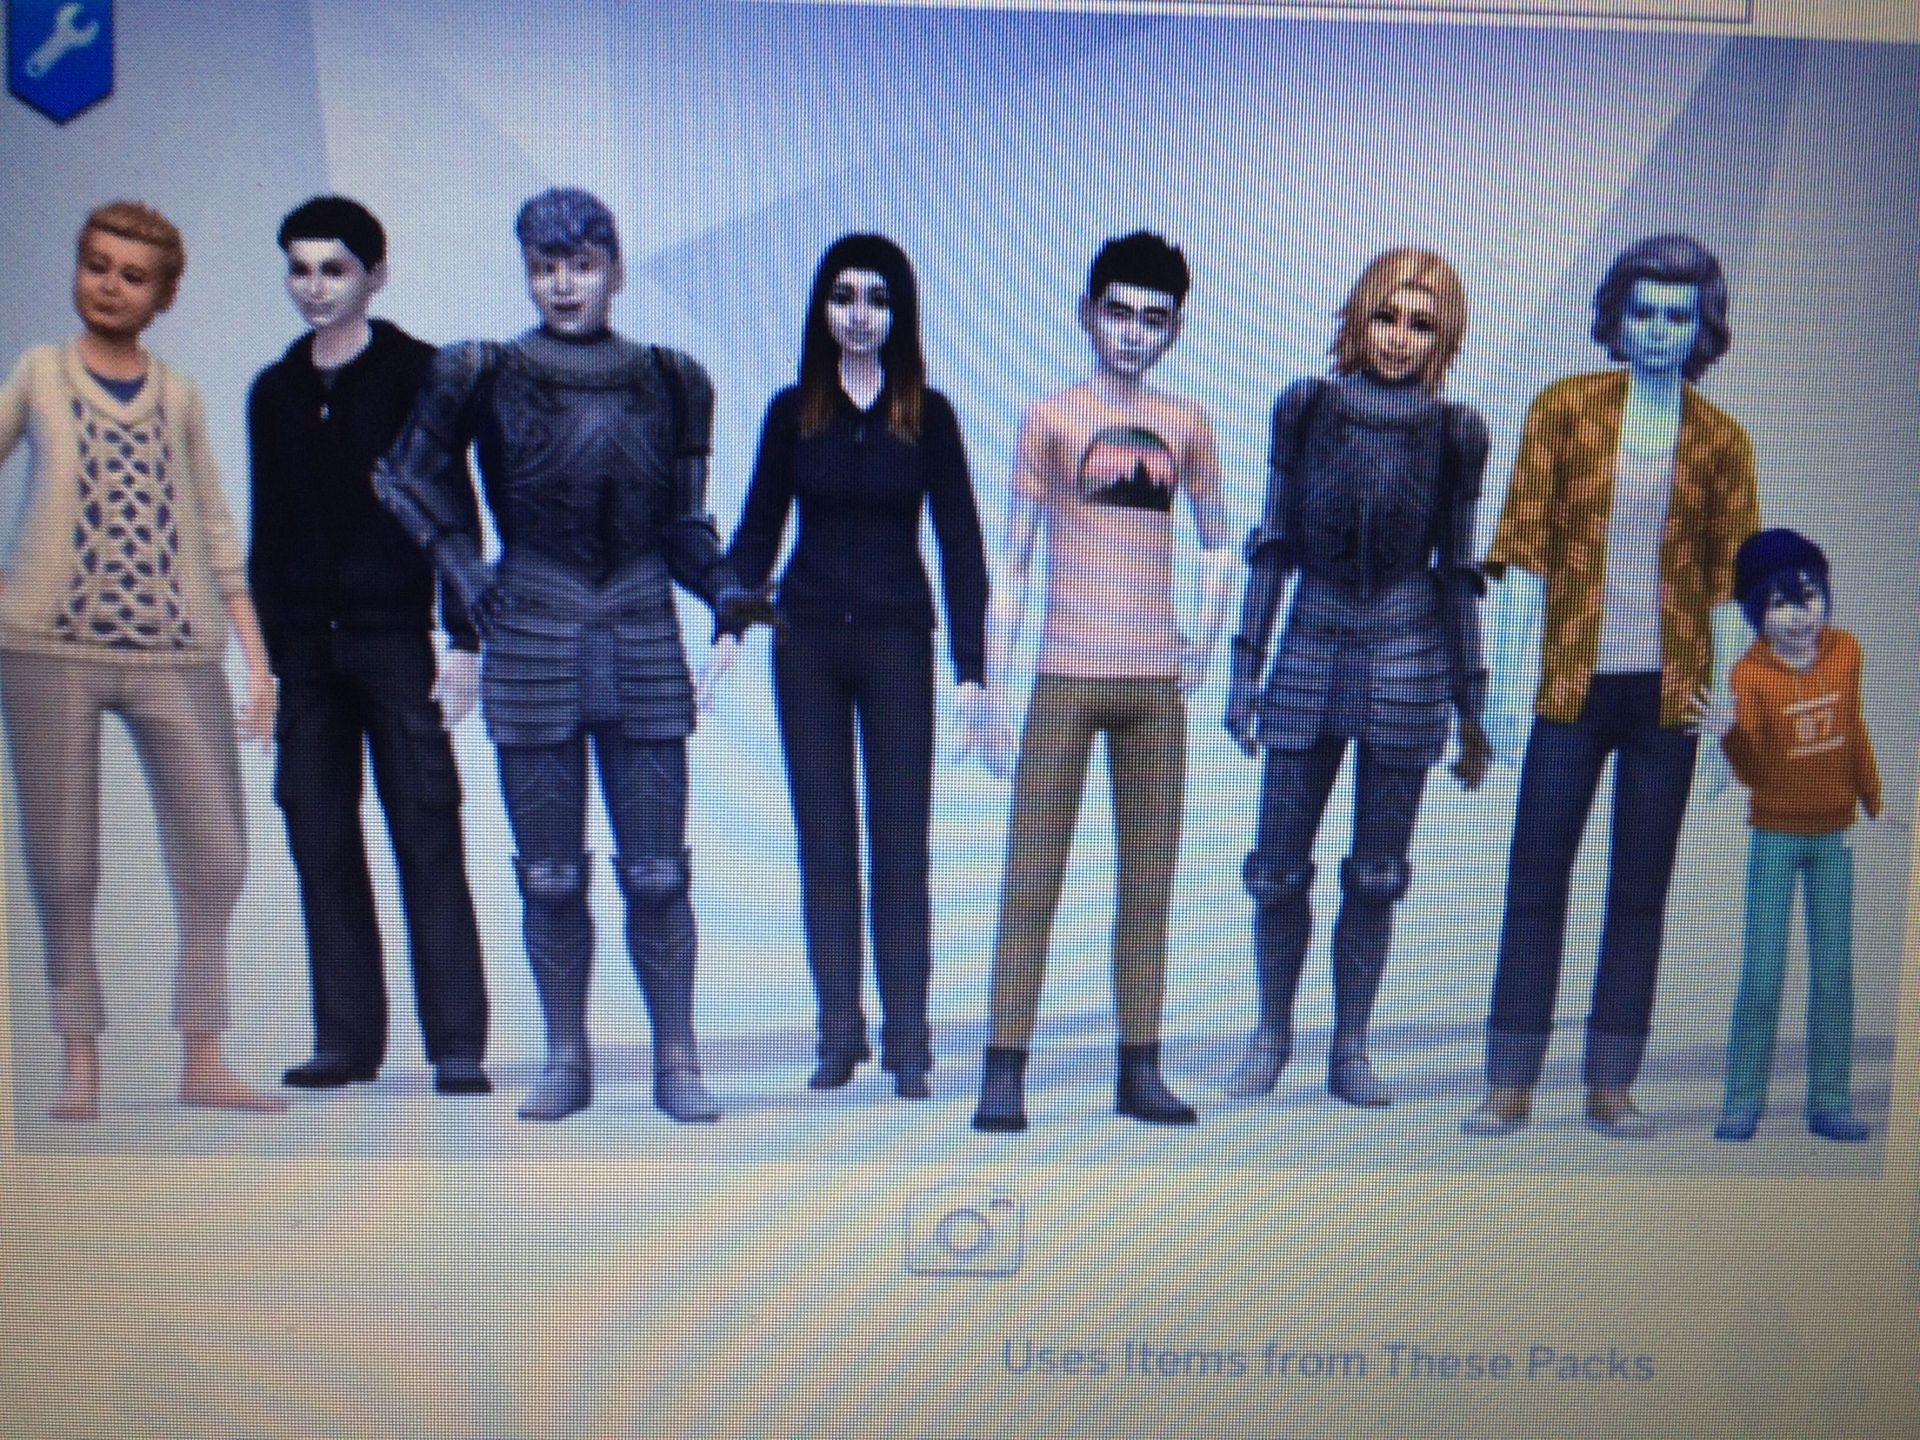 Stuff I Made For The Sims 4 - #22 - Snowdin Characters - Wattpad